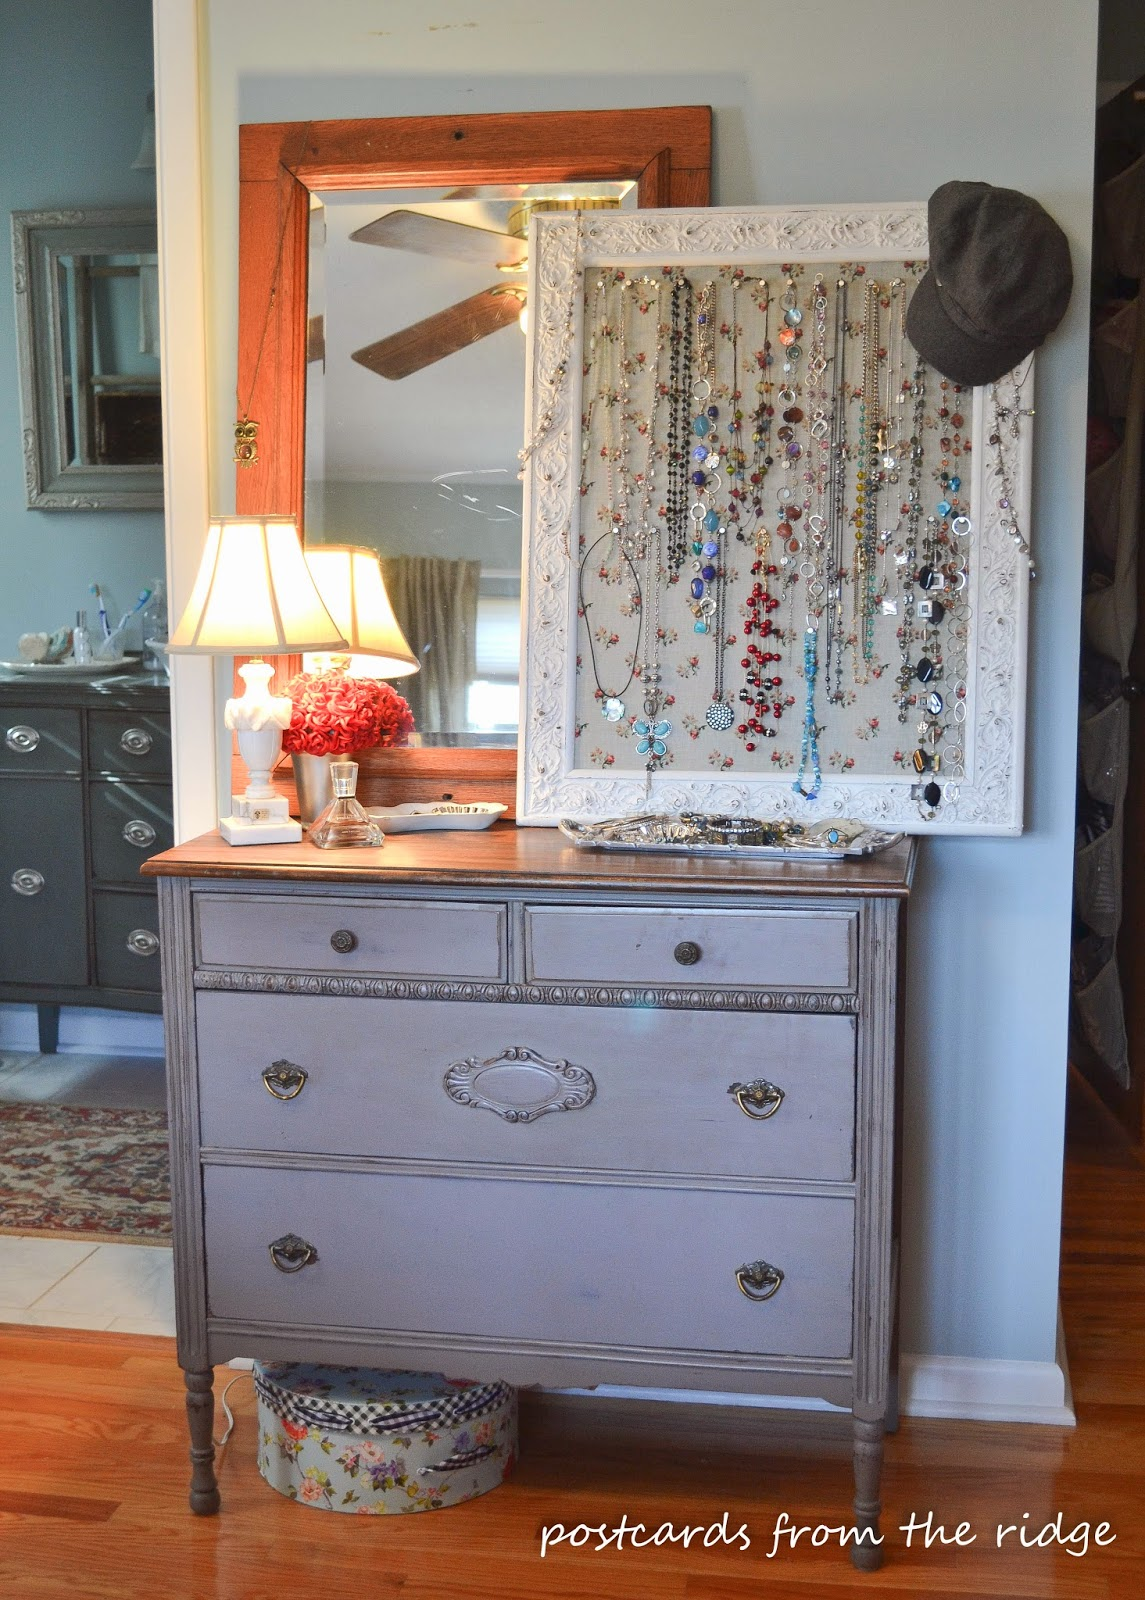 An old beat up frame turned into a jewelry board, plus other great ideas for jewelry organization. Love the dresser too!